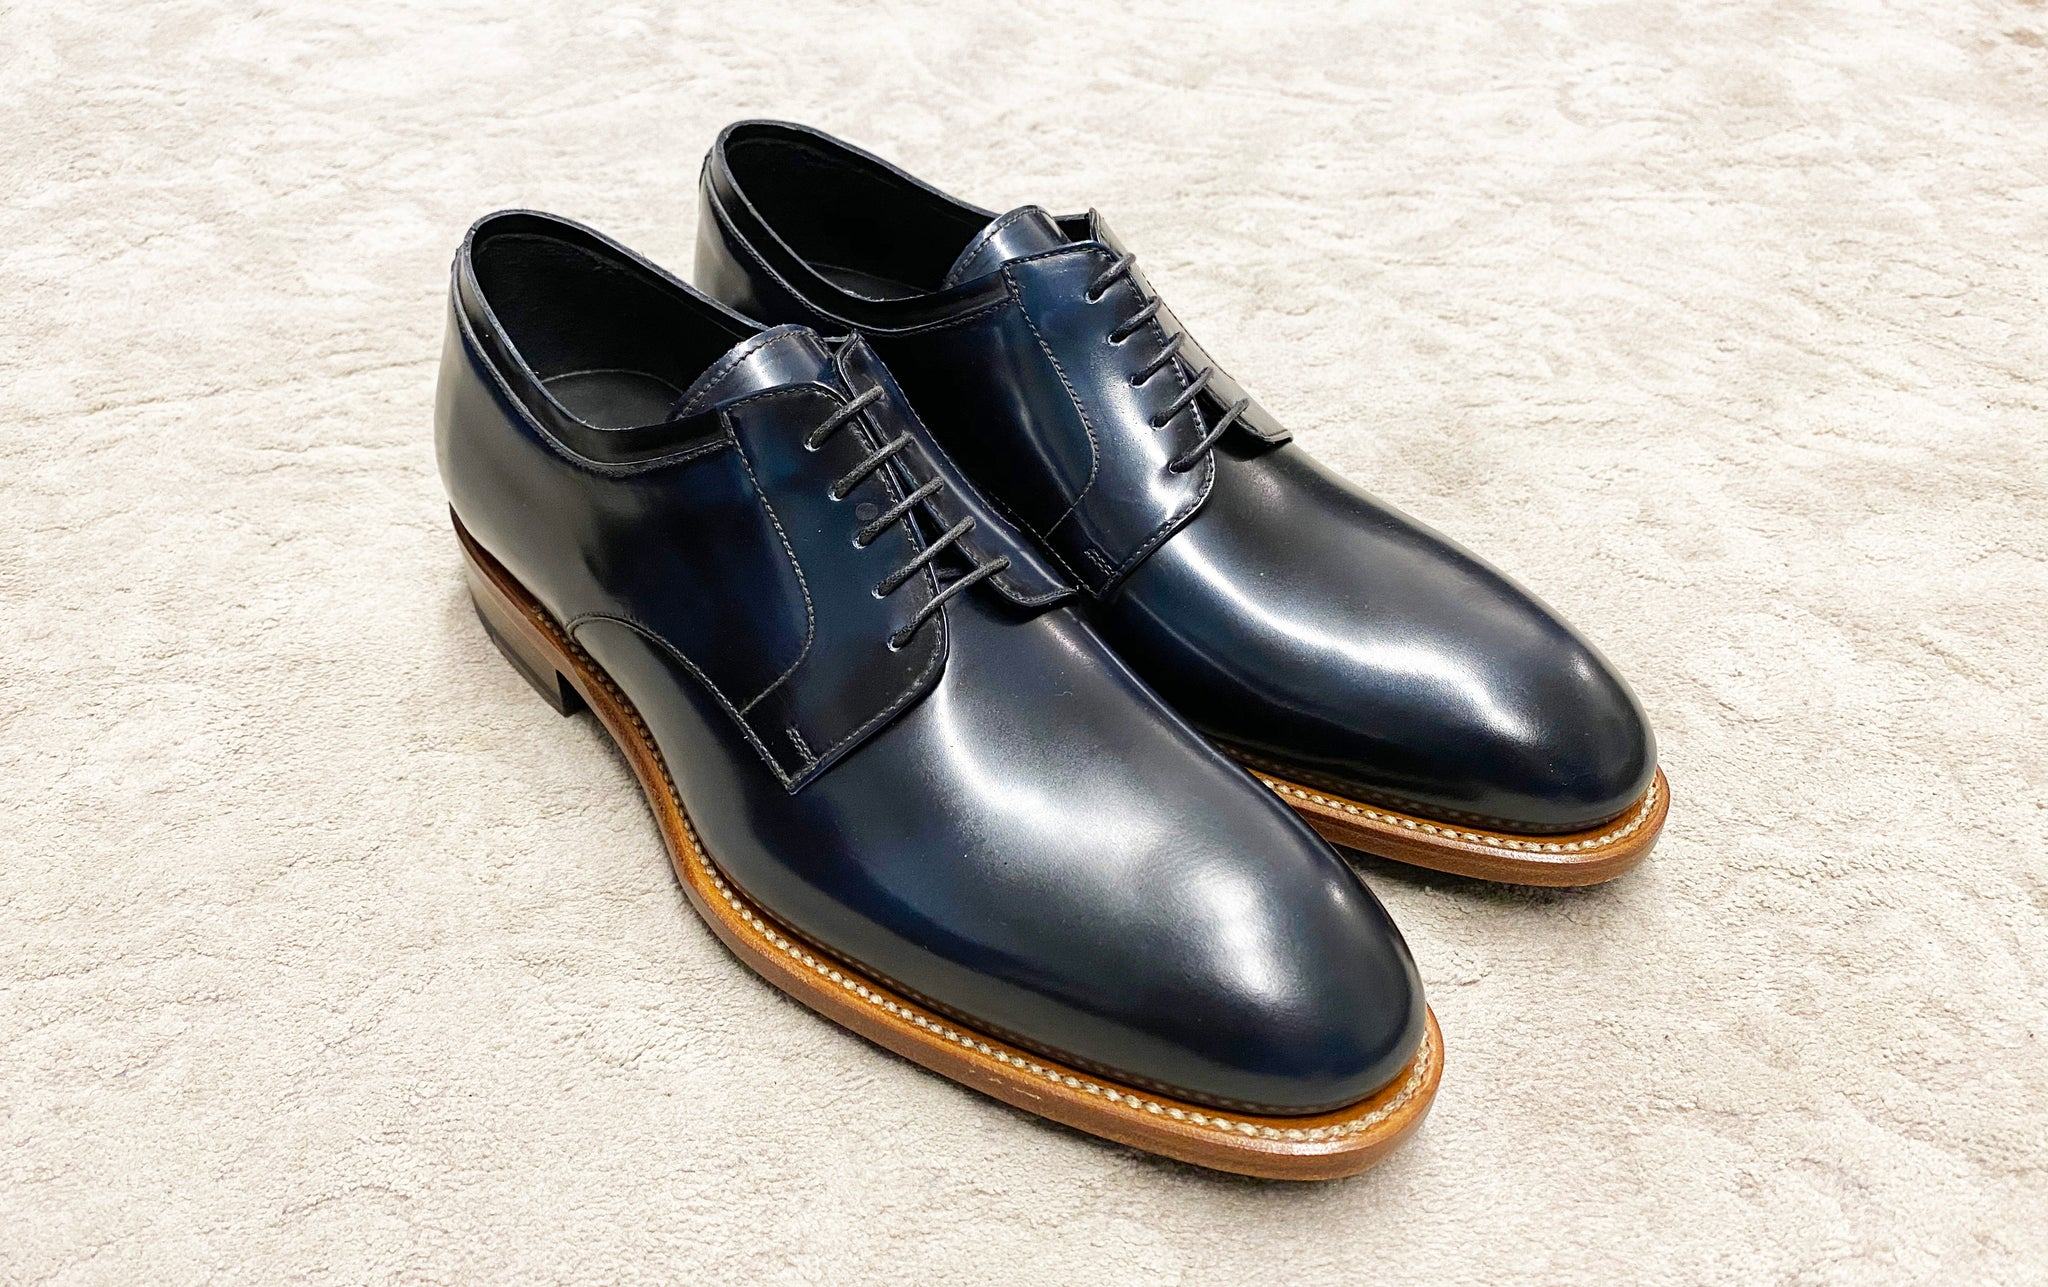 Bondeno Bespoke Custom Made leather dress shoes for men